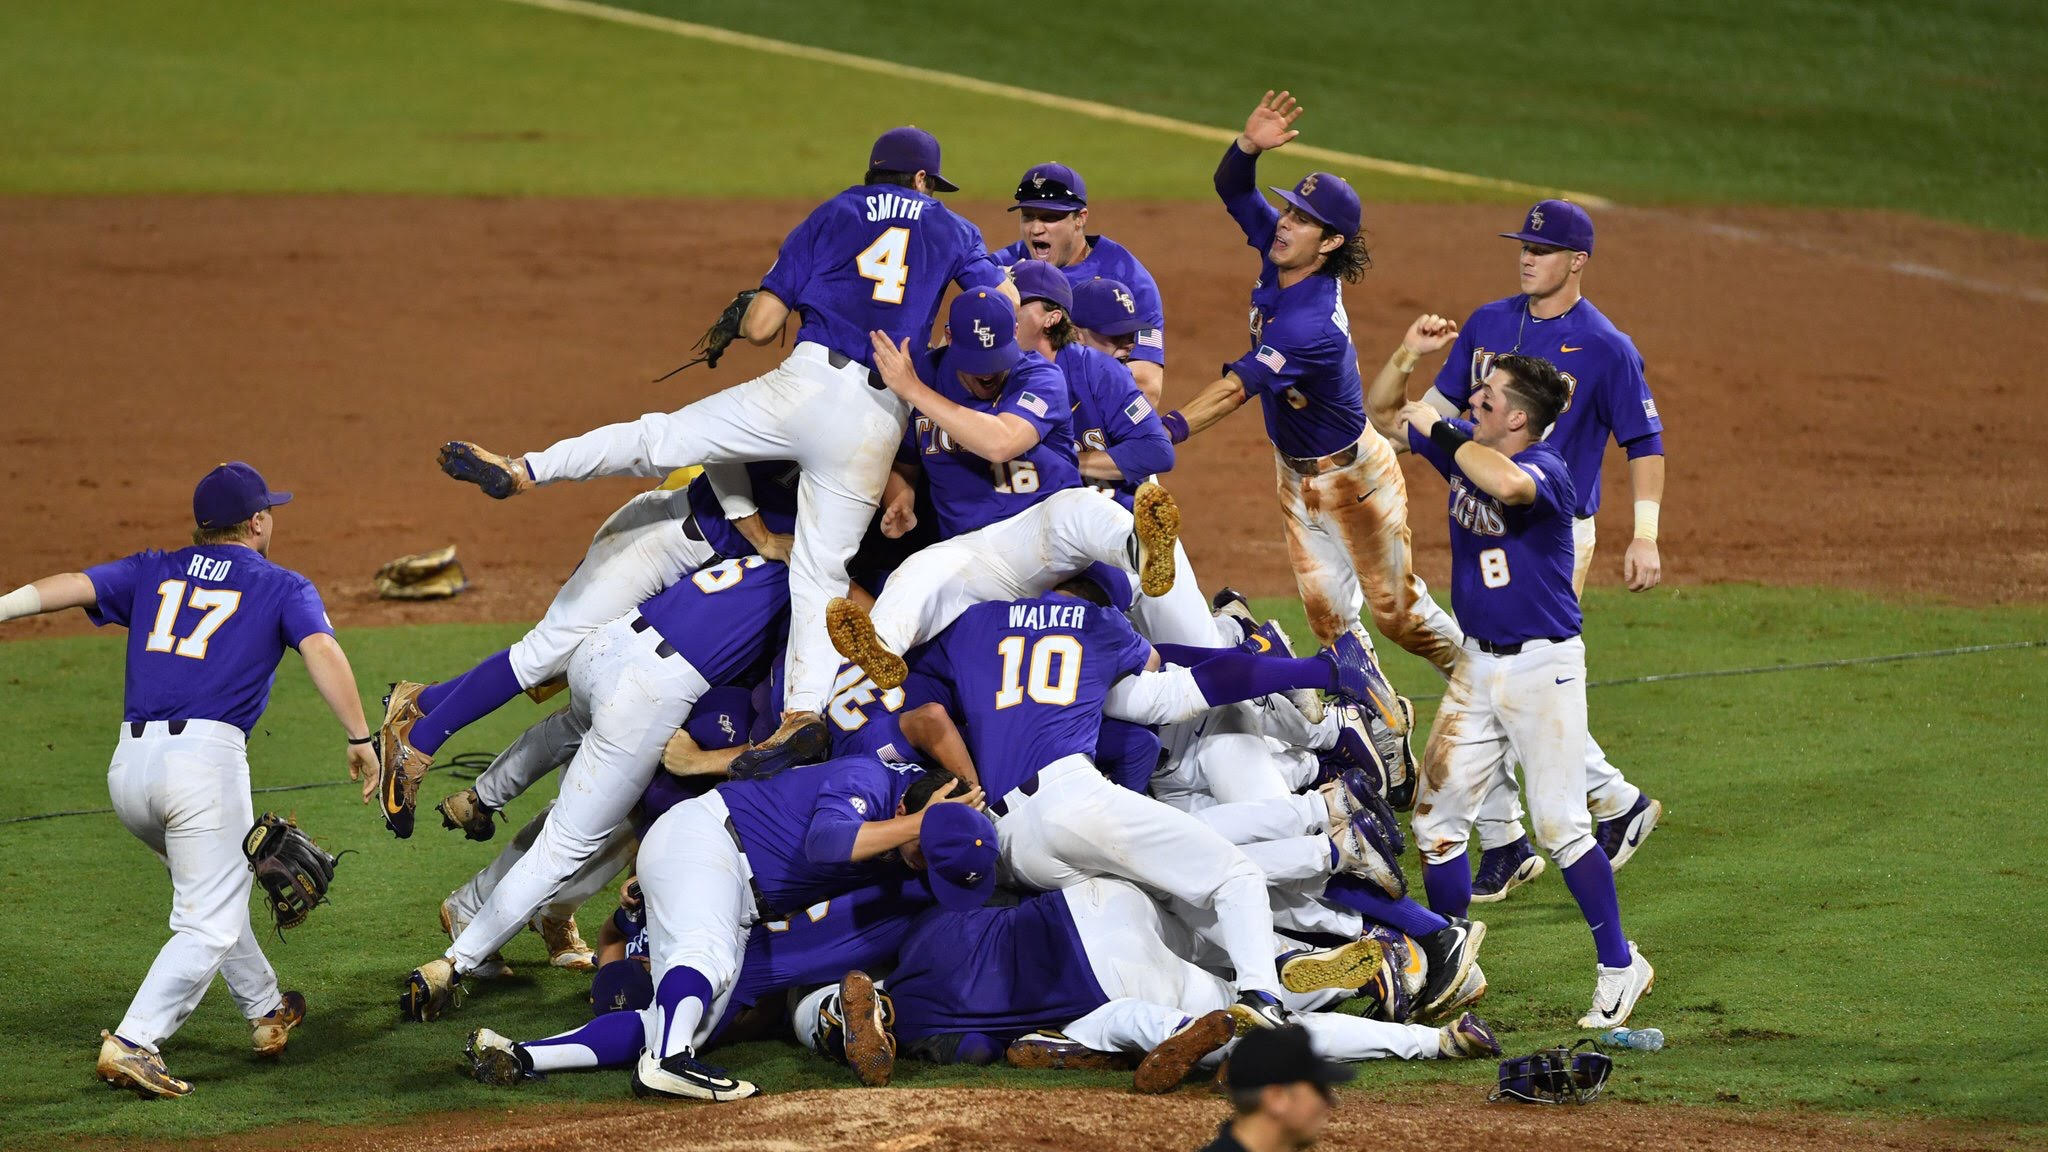 LSU reaches its 18th College World Series